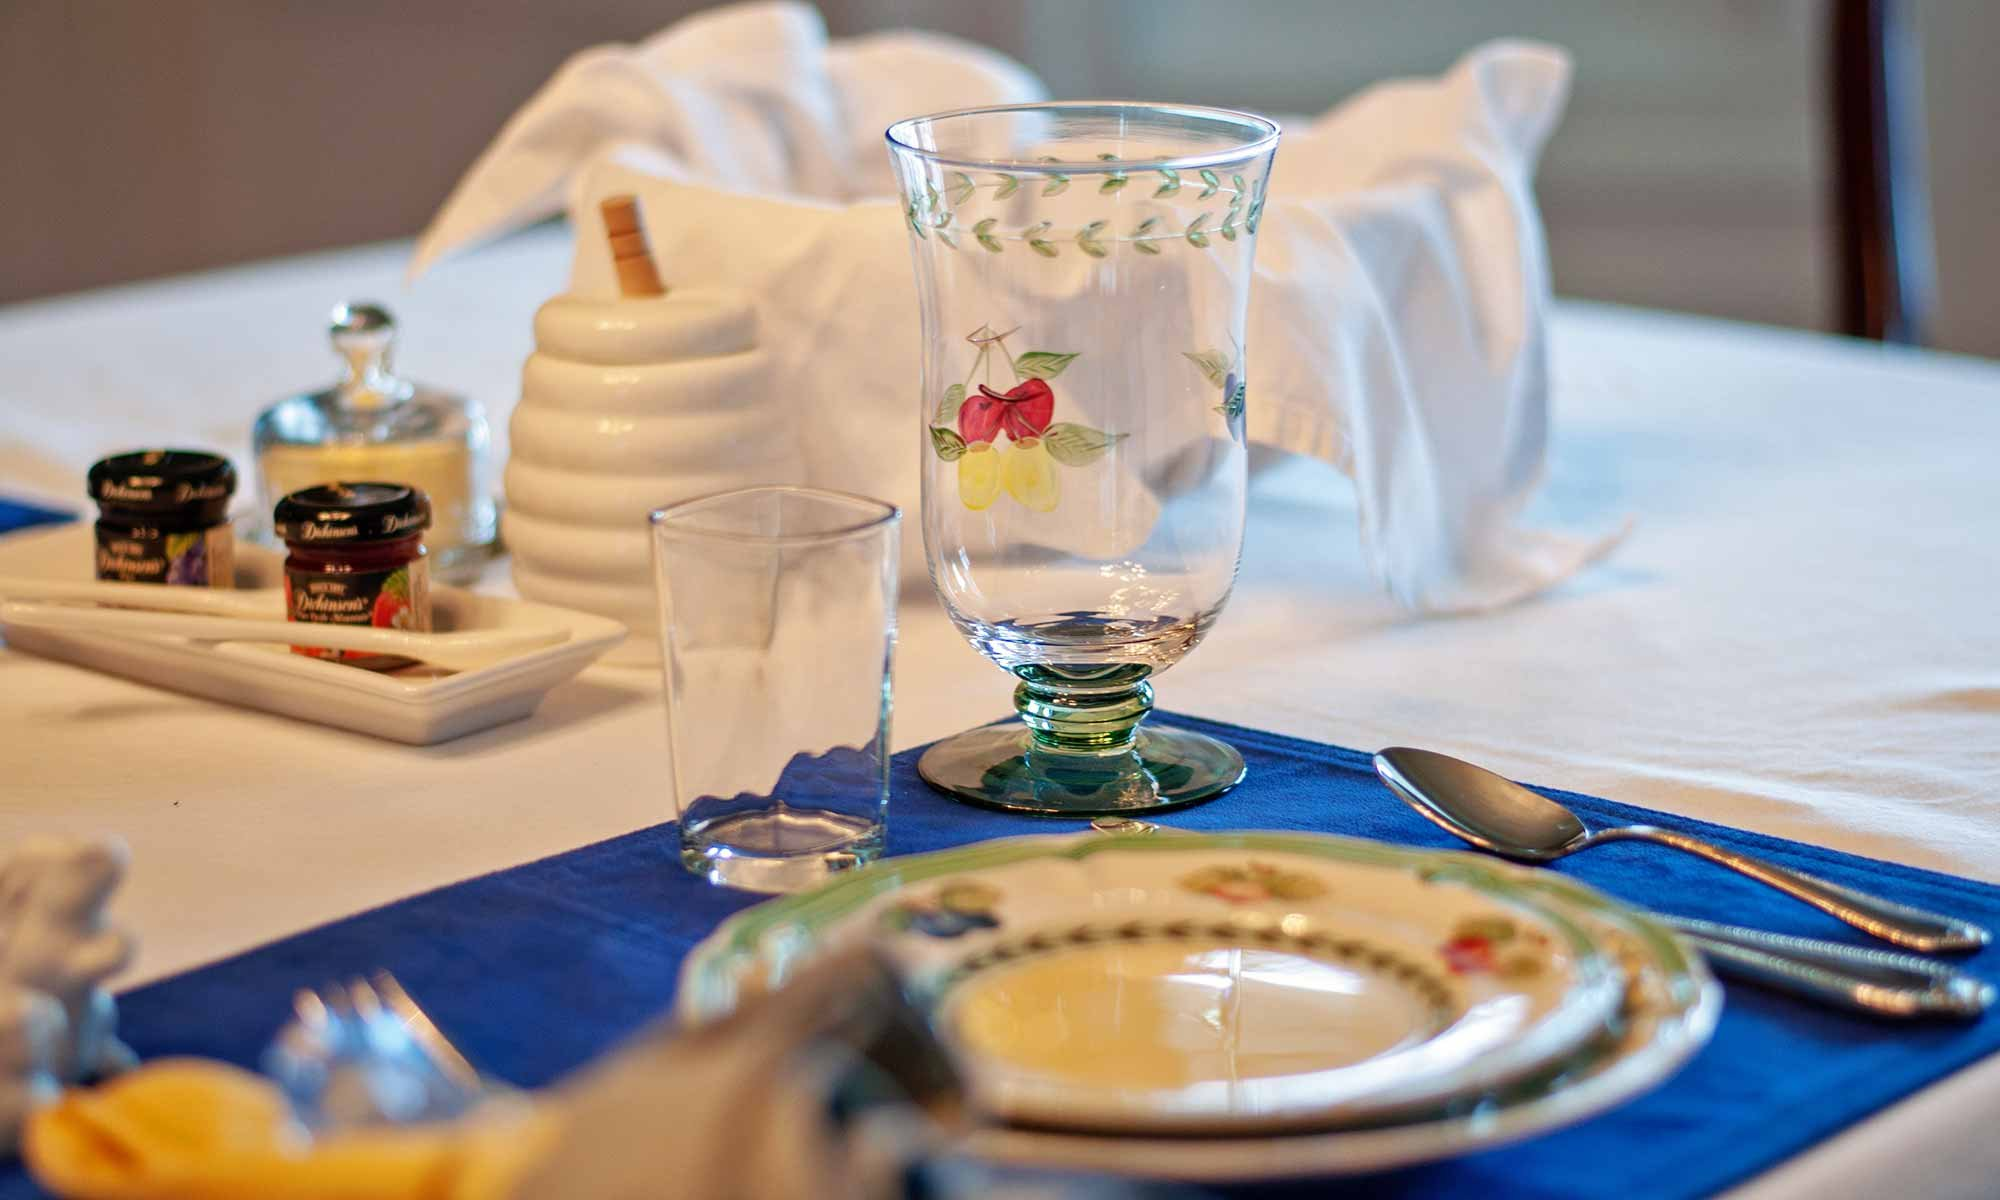 Placesetting With Napkin And Glasses